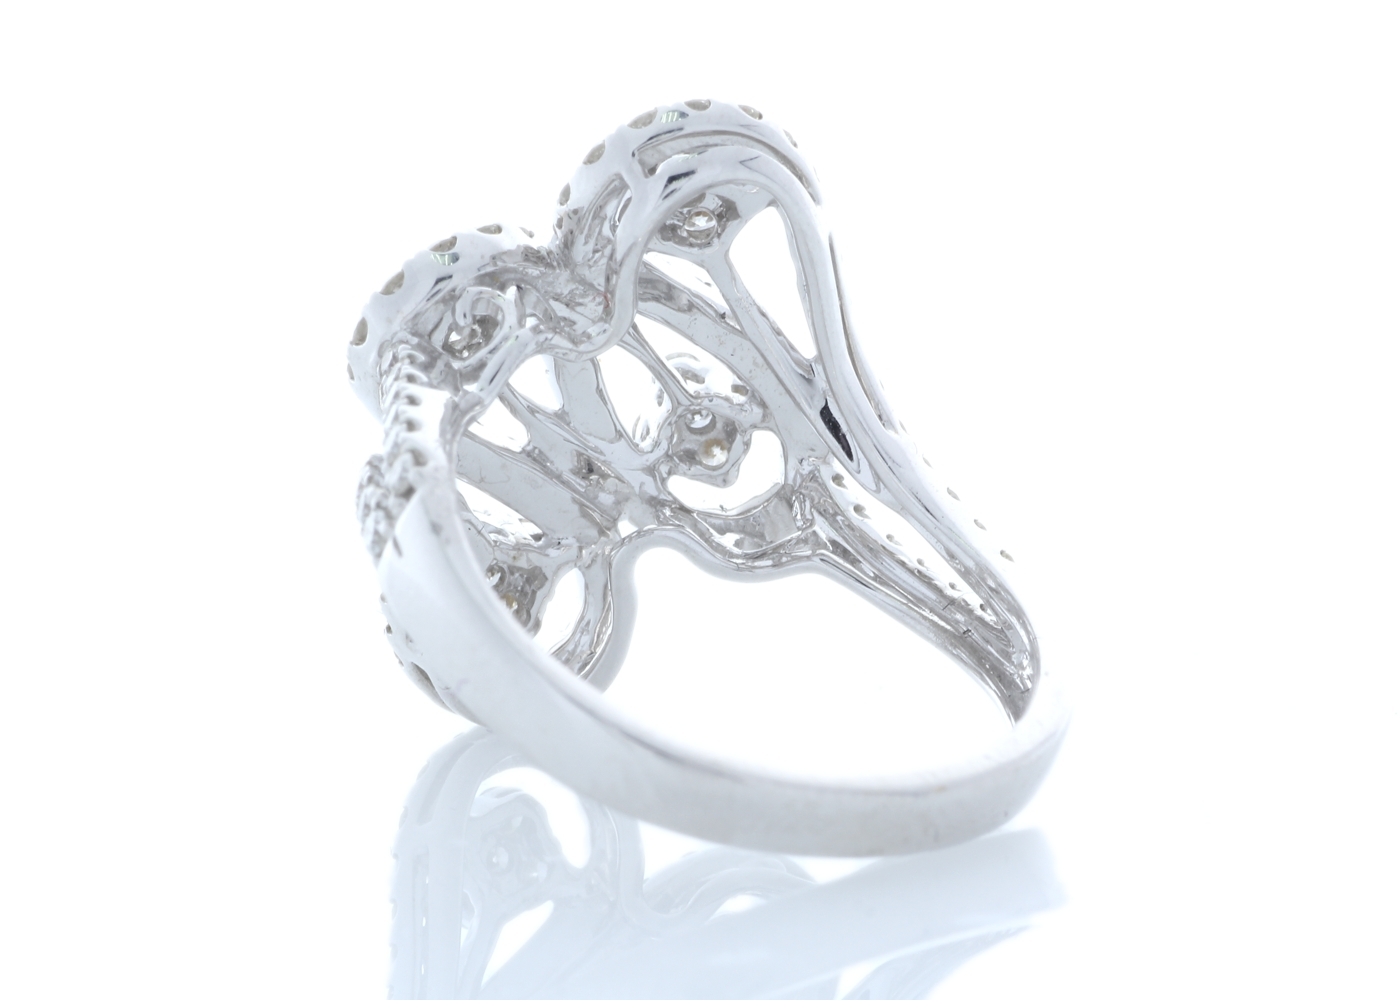 Lot 34 - 18ct White Gold Fancy Cluster Diamond Ring 1.15 Carats